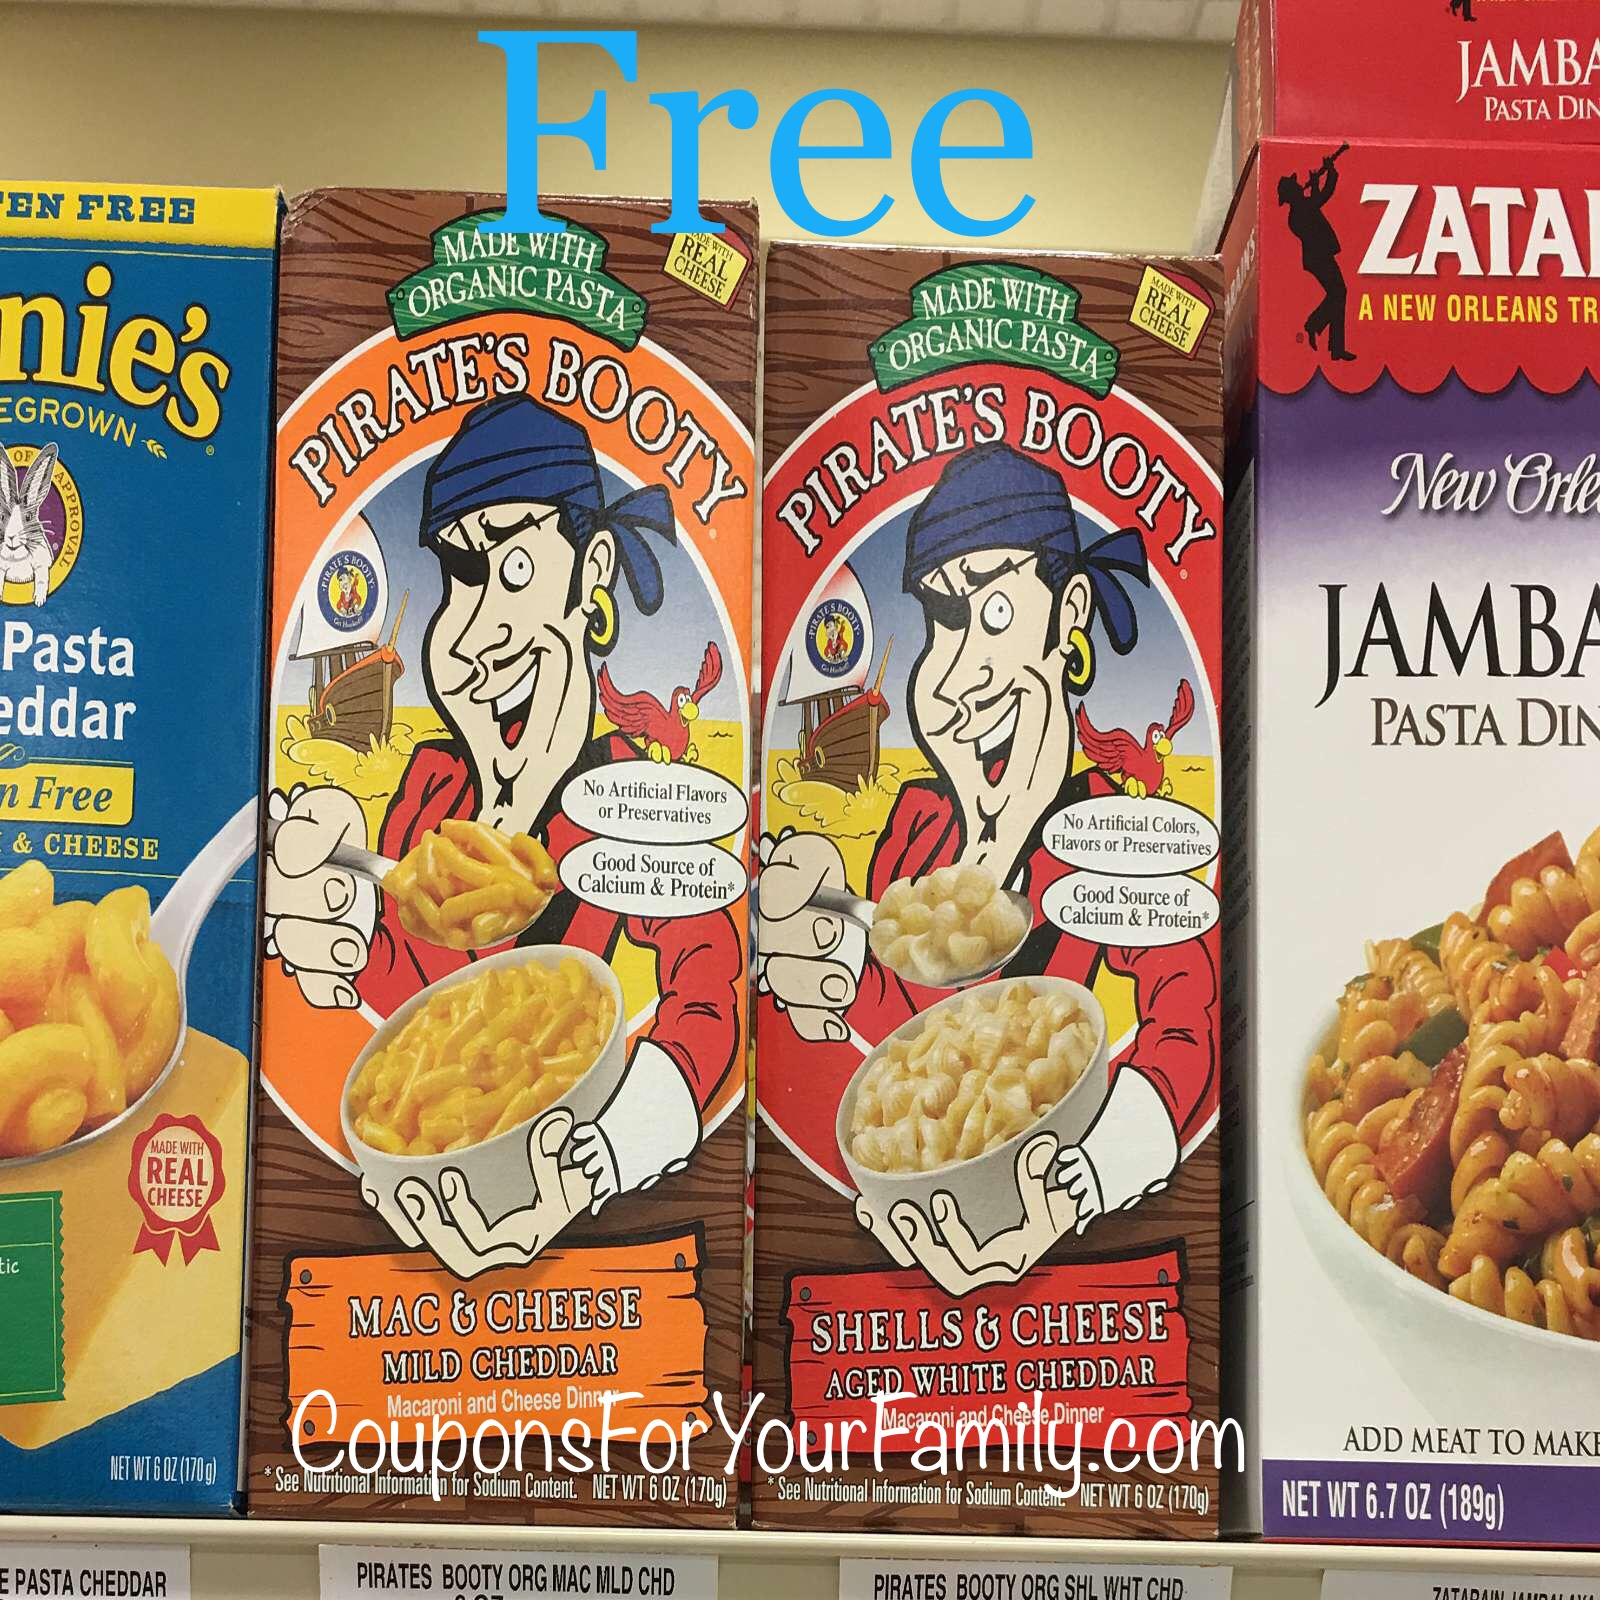 **HOT** Unadvertised Tops Coupon Deal Pirates Booty Mac & Cheese for FREE!!!